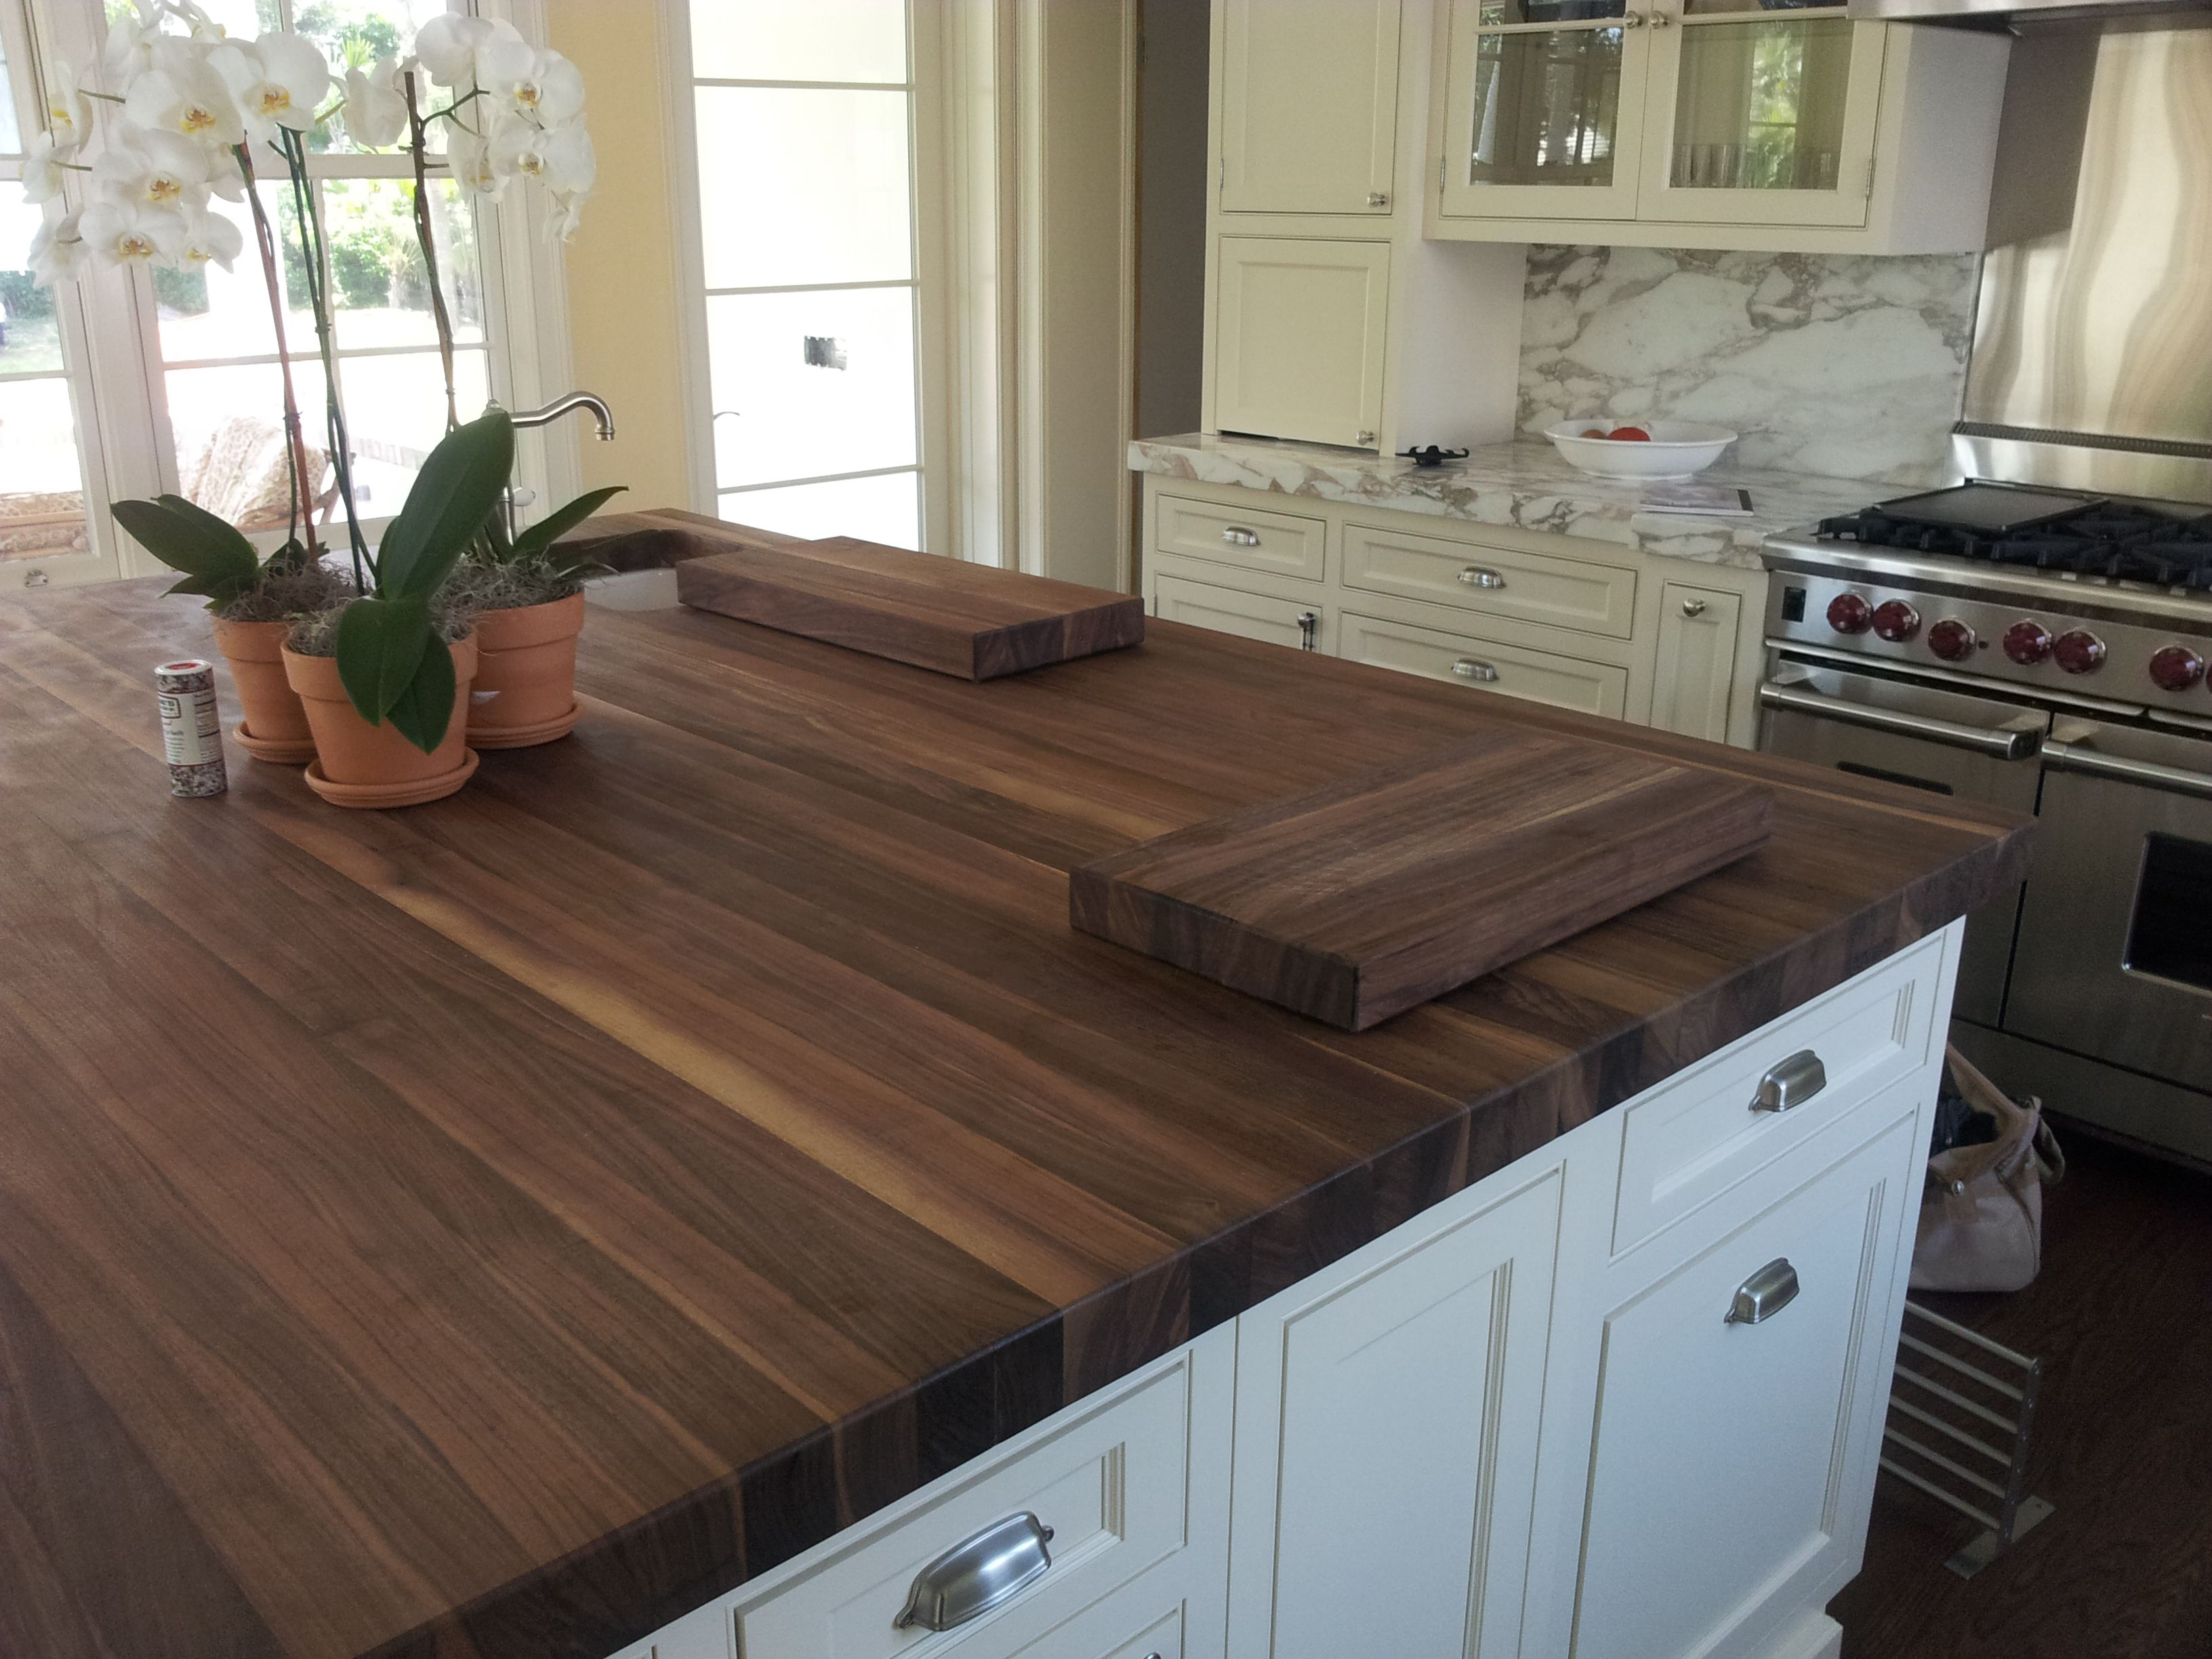 Dark Butcher Block Countertop With White Cabinets And Stainless